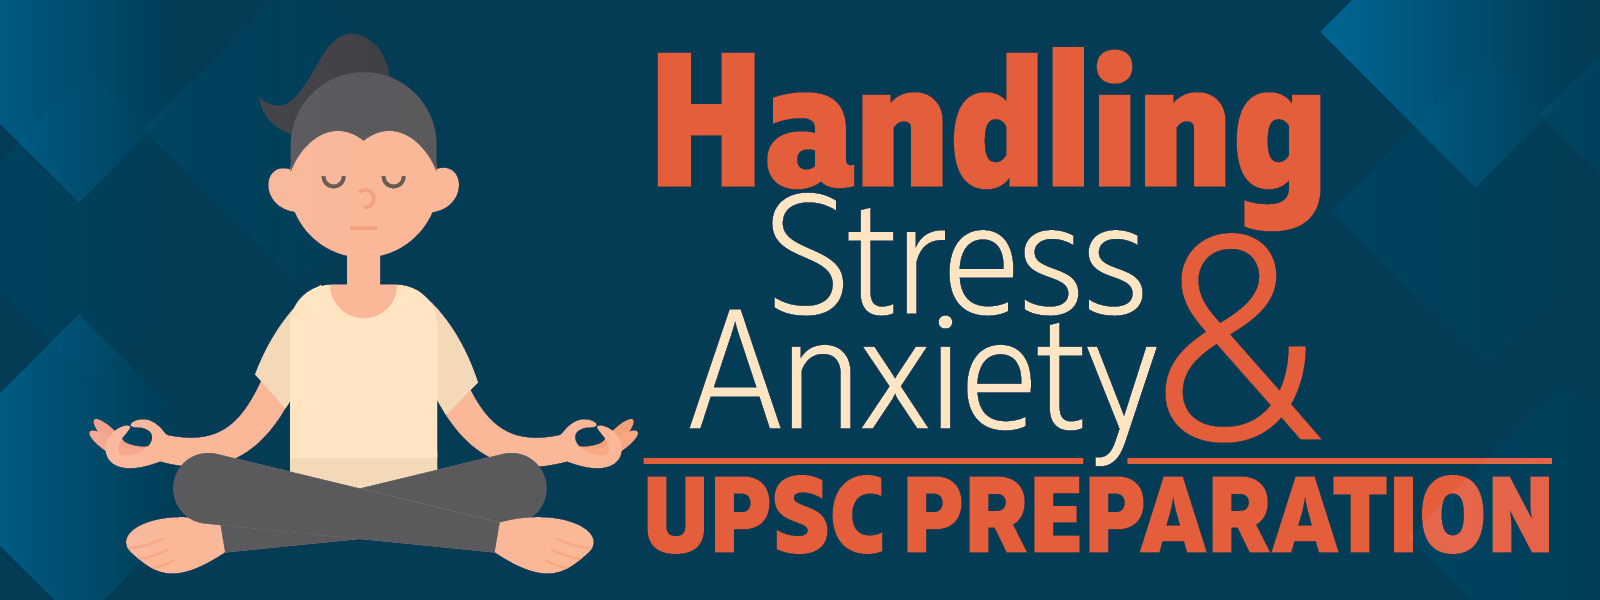 IAS Interview: Handling stress and anxiety during UPSC Preparation